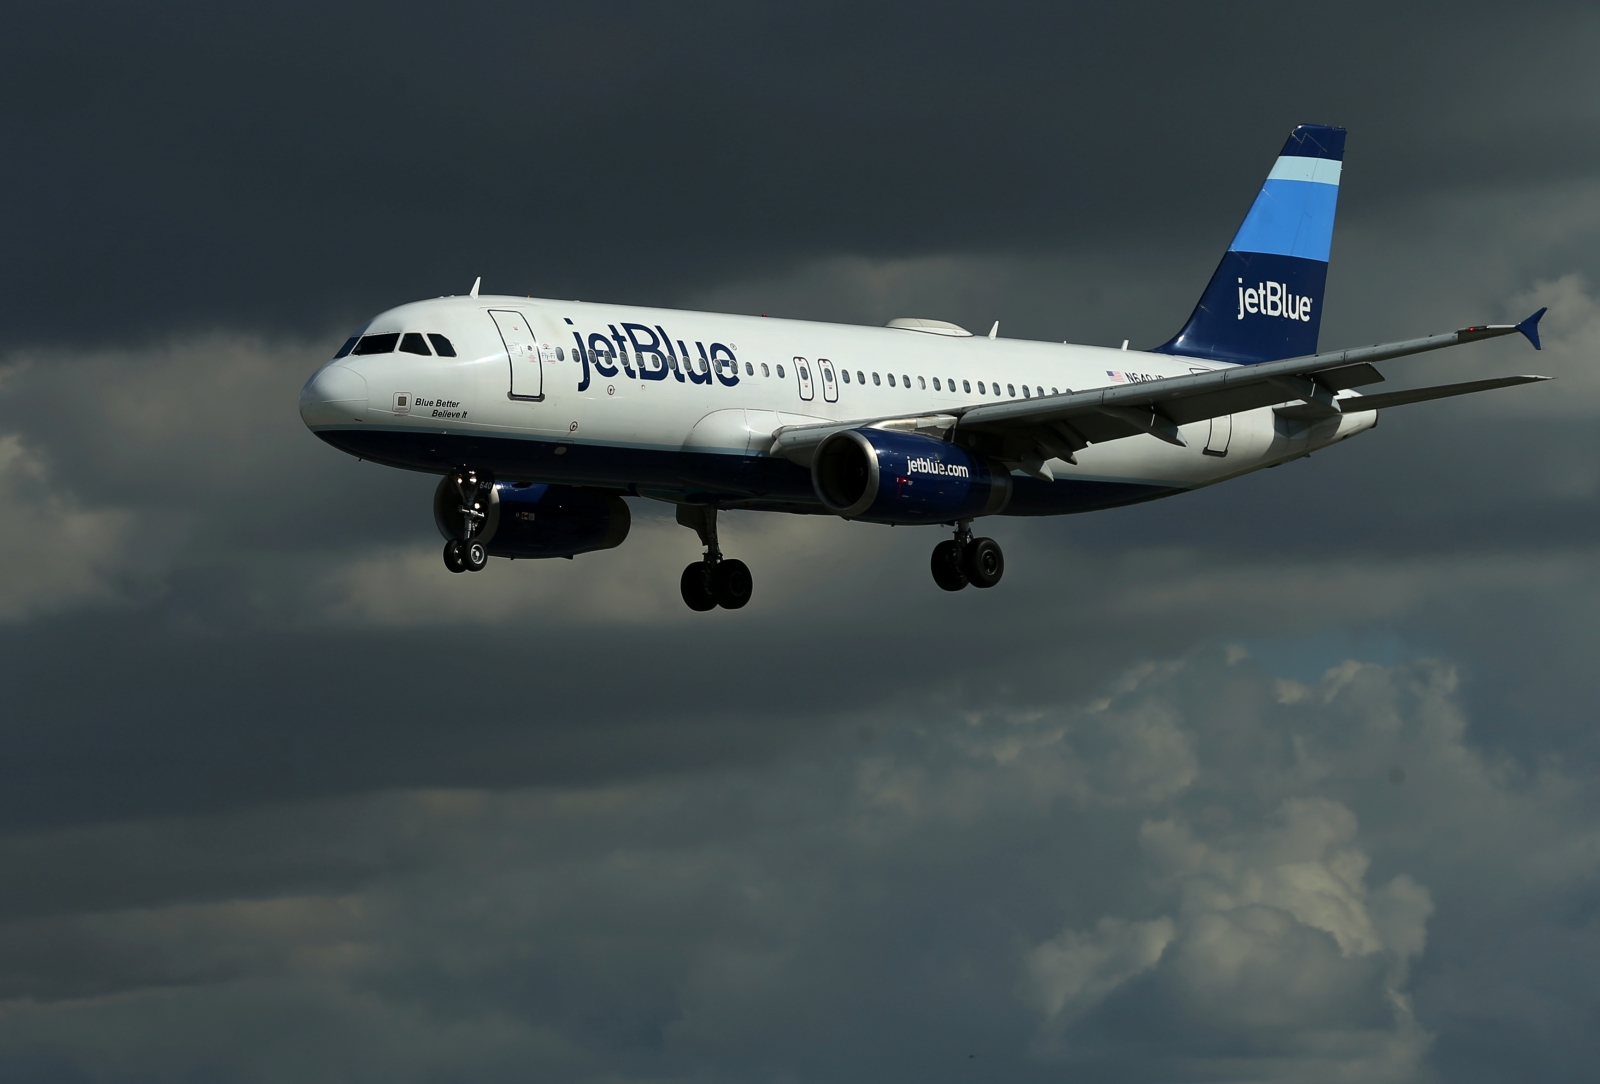 Laptop Fire Causes Jetblue Flight To Make Emergency Landing